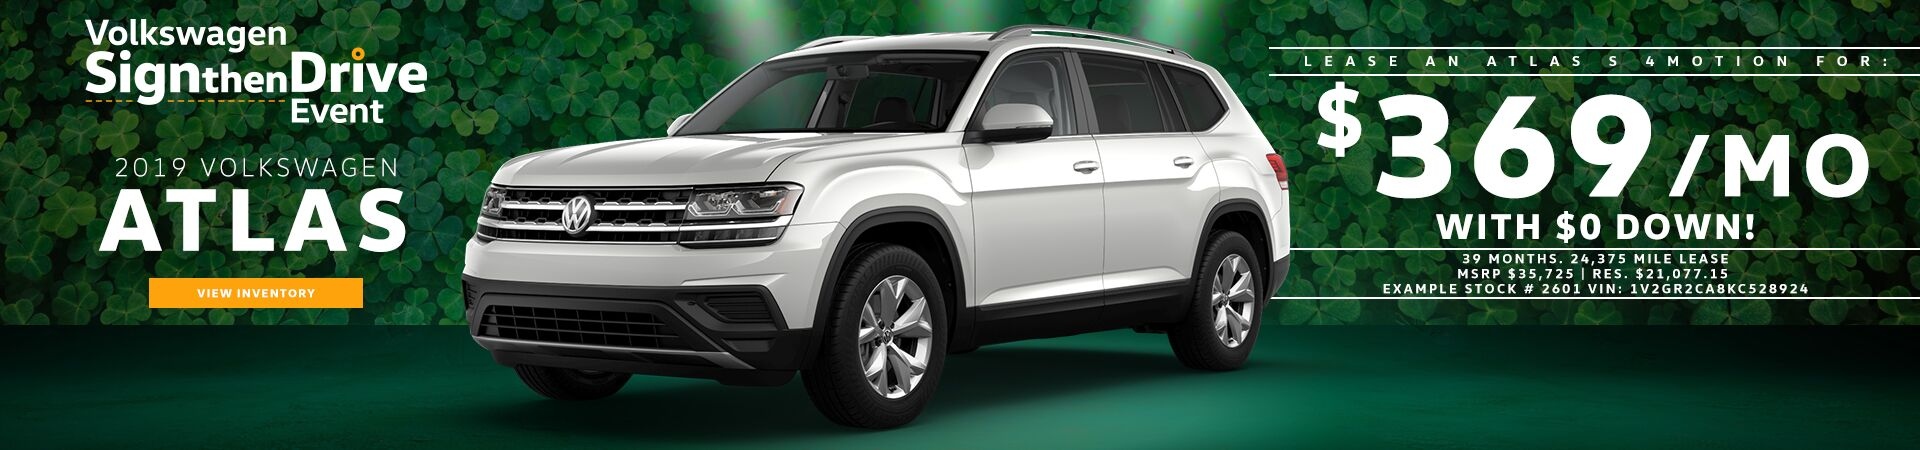 2019 Atlas Sign then Drive offer